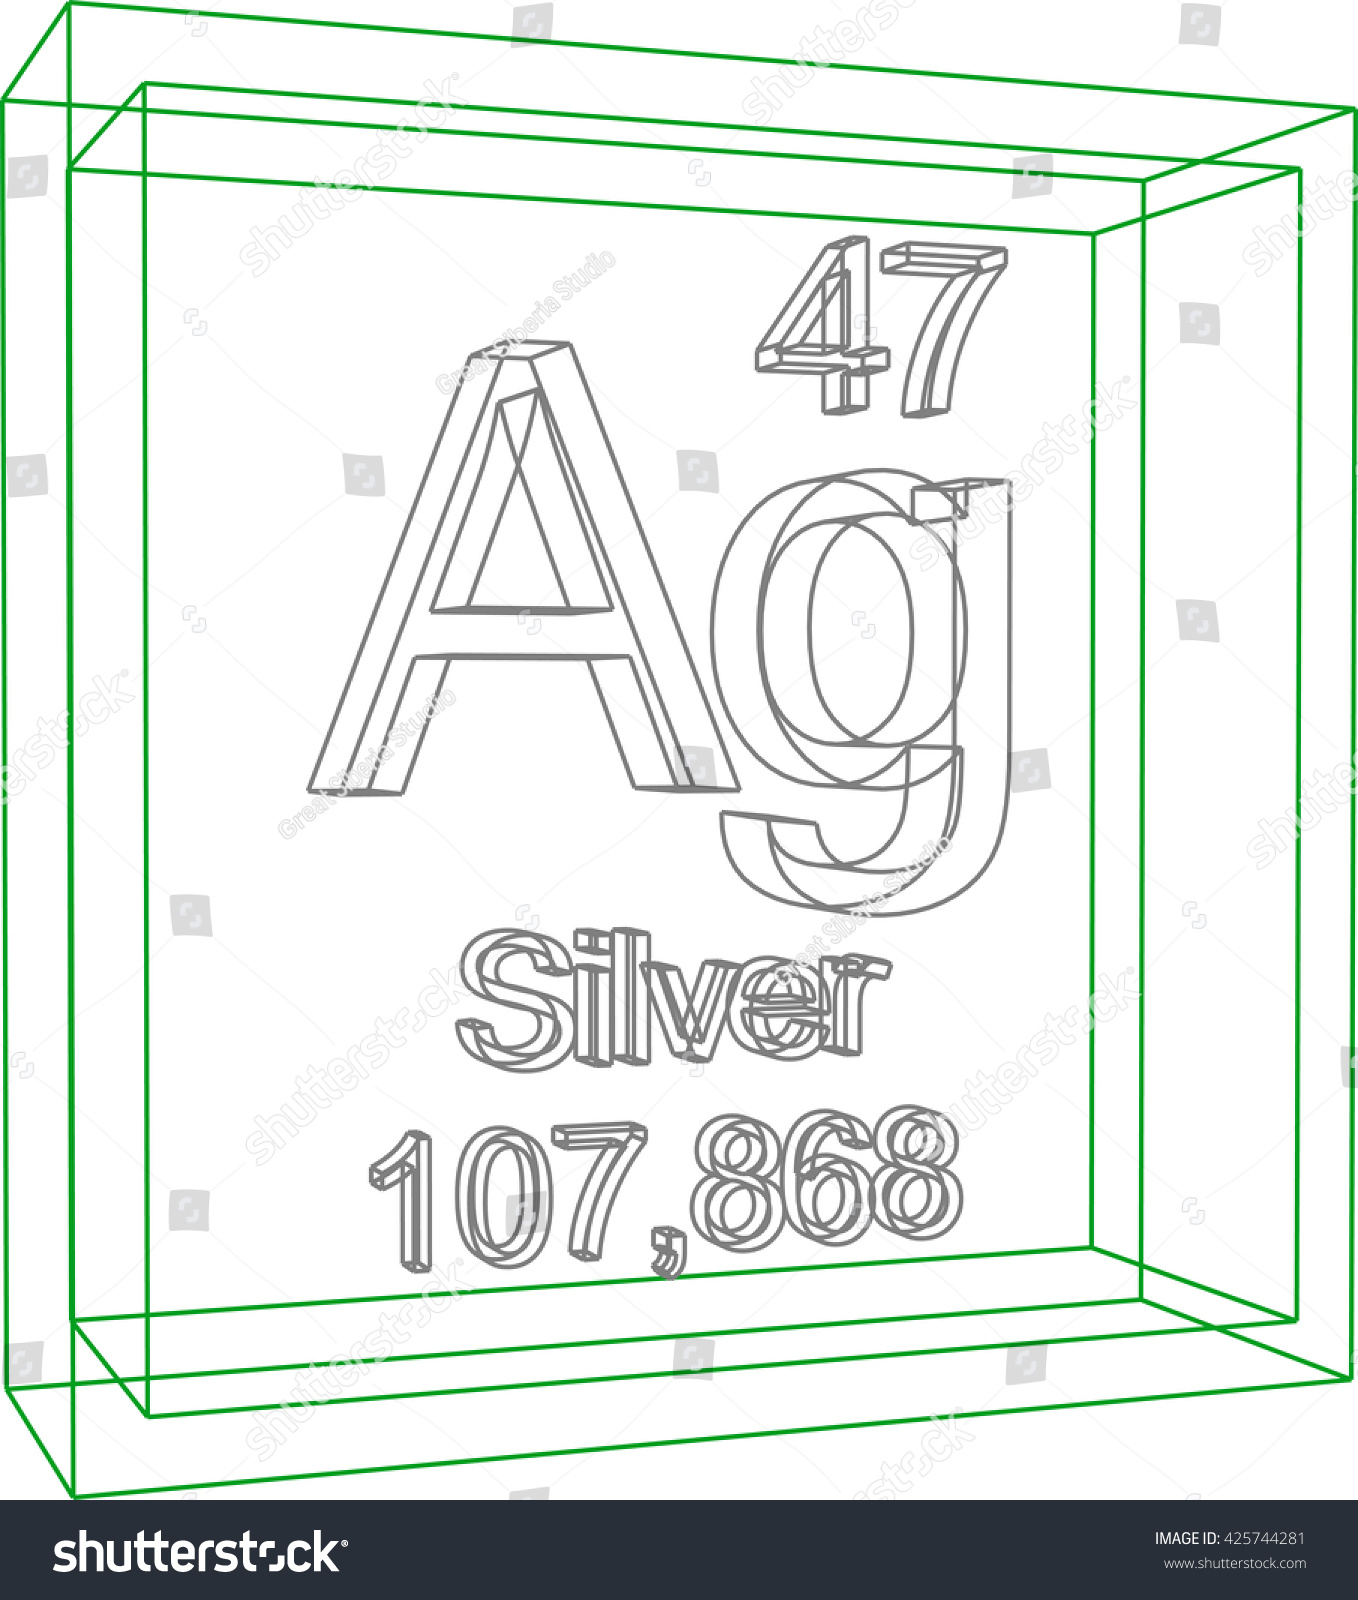 Periodic table elements silver stock vector 425744281 shutterstock periodic table of elements silver urtaz Gallery